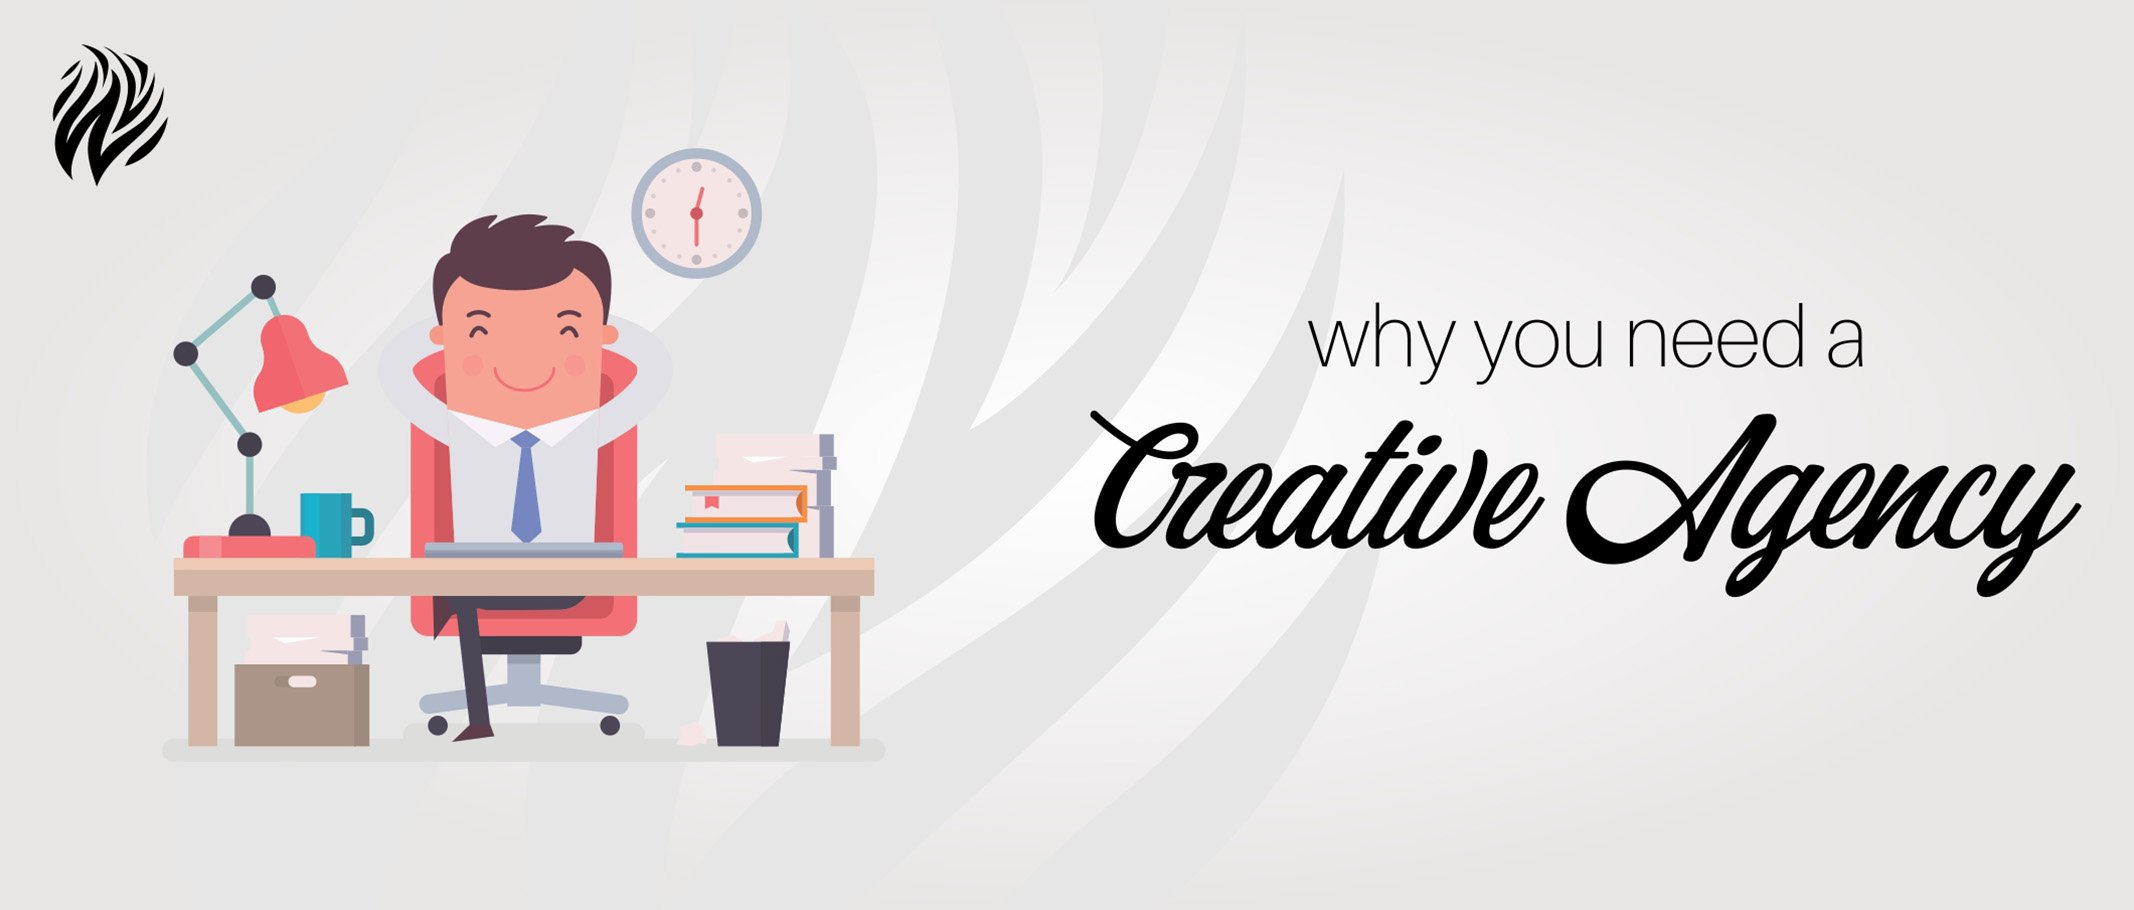 purpose of creative design agency